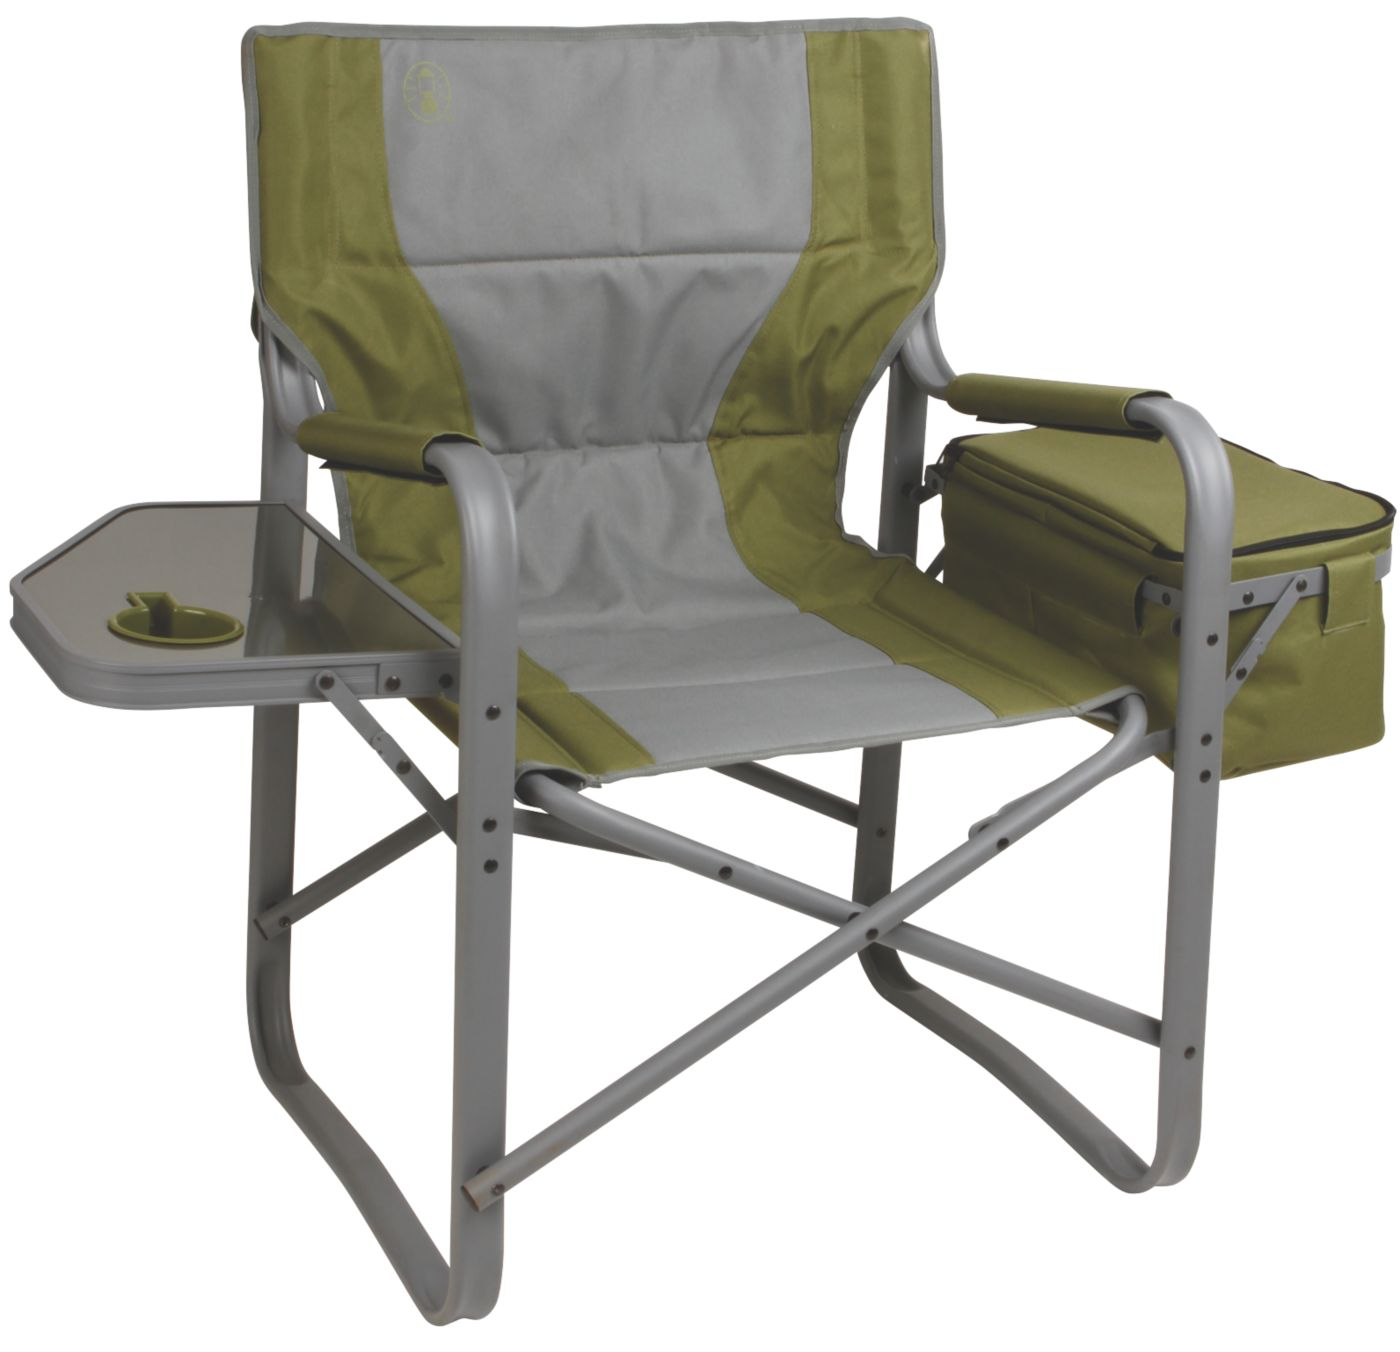 Directors Camp Chair Xl With Cooler  Coleman